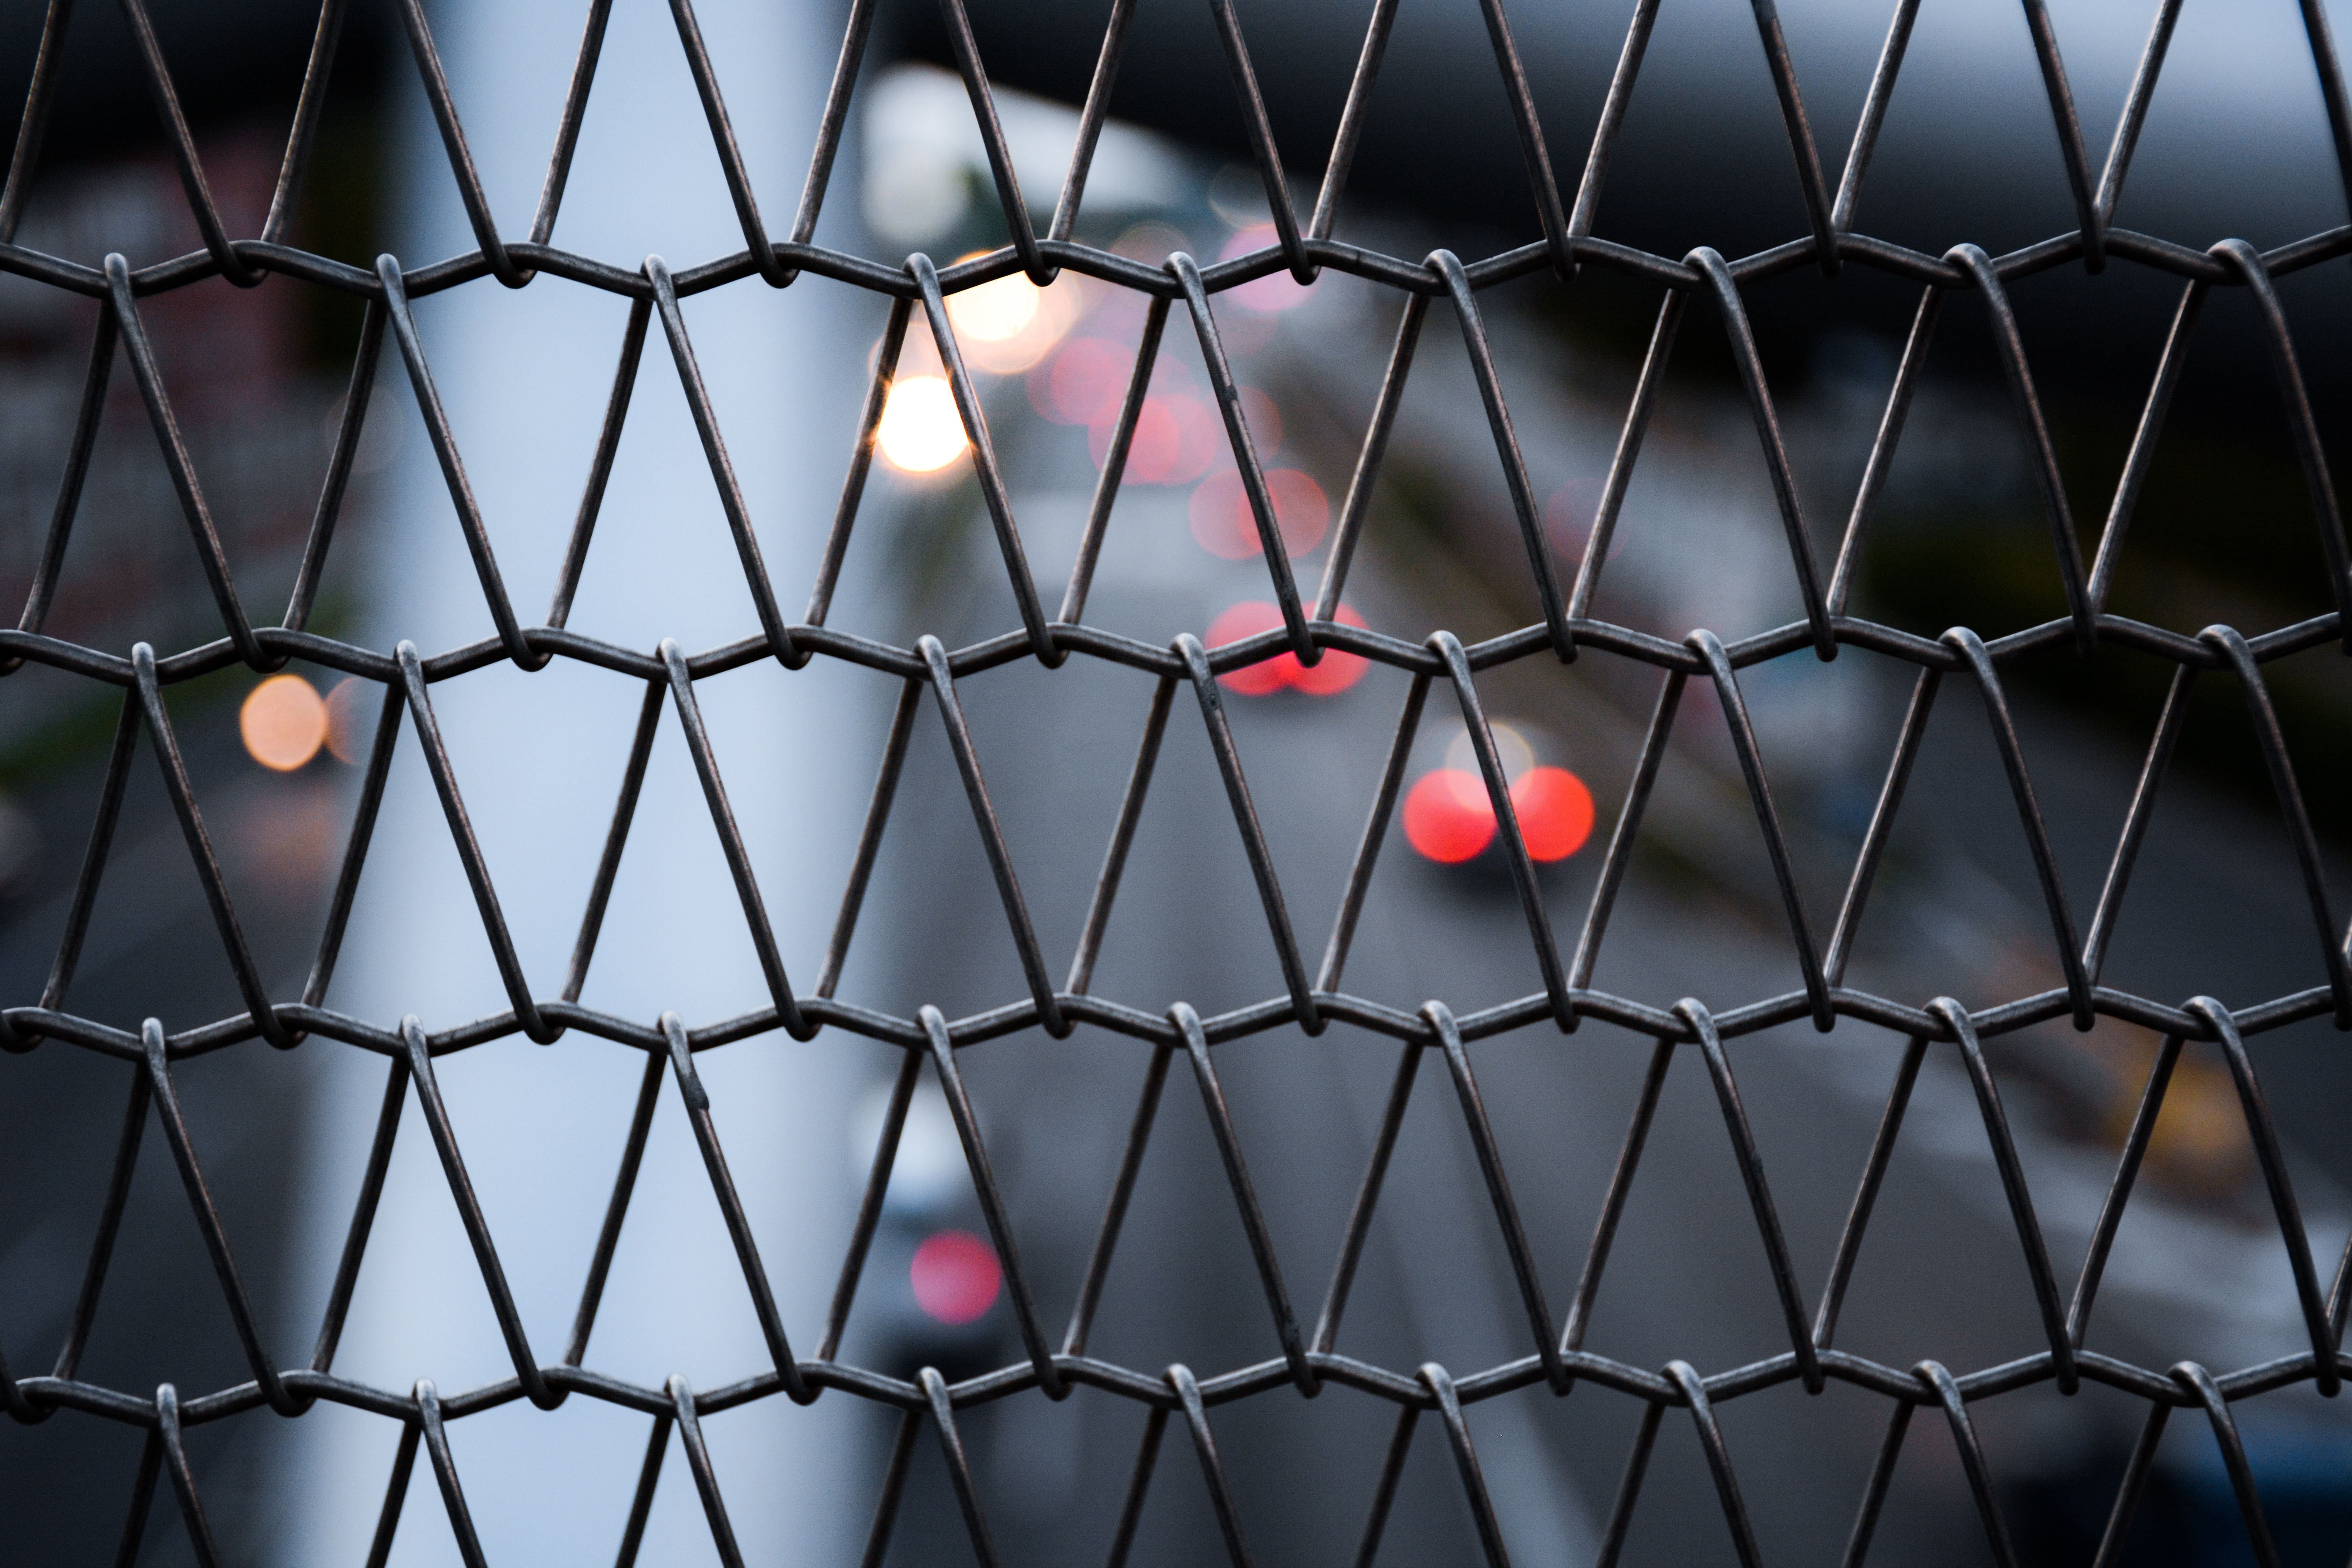 gray wire fence macro photography